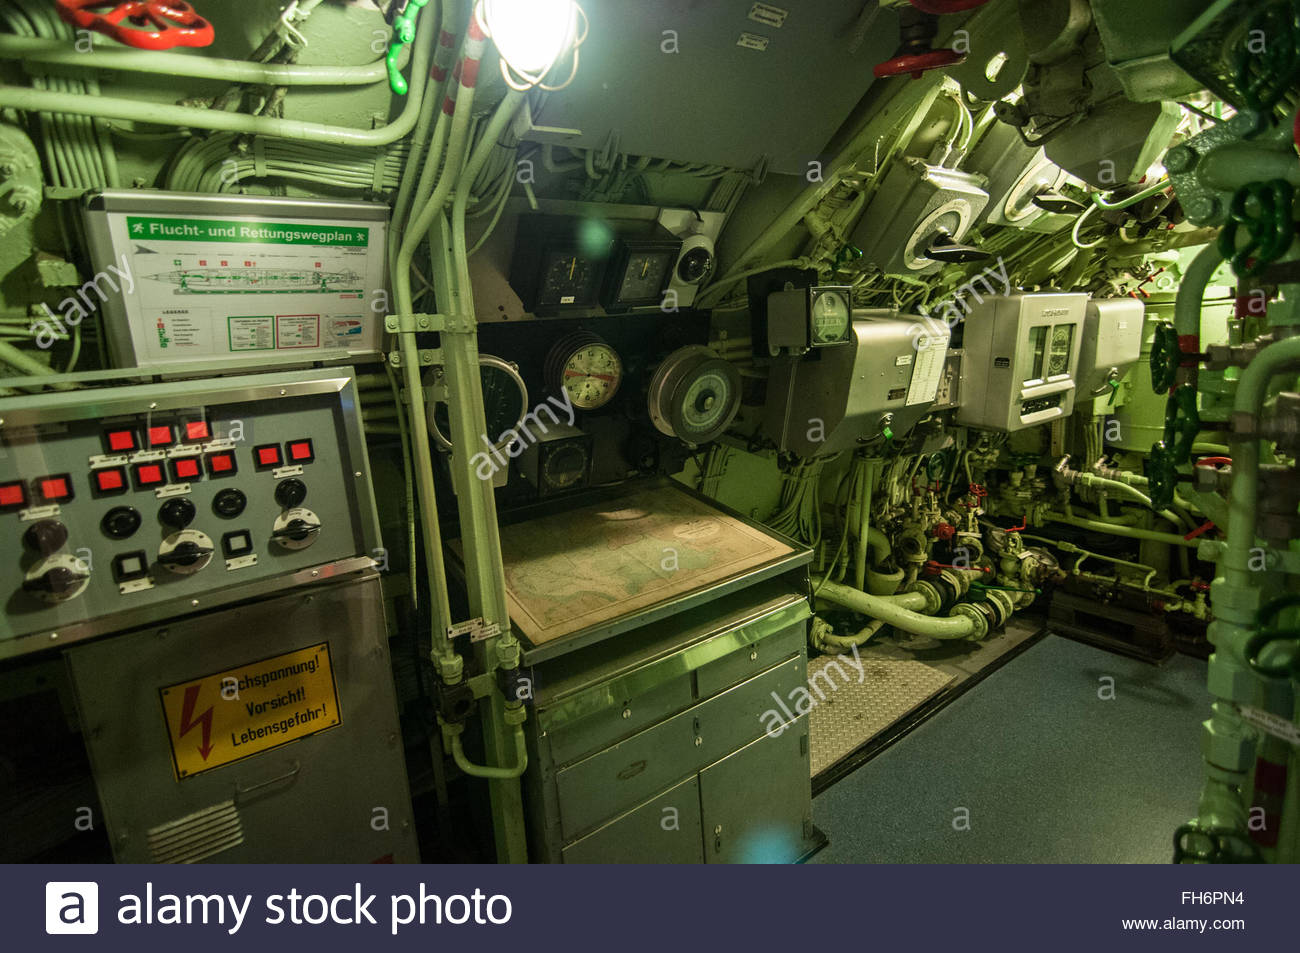 hight resolution of inside the u boat stock image